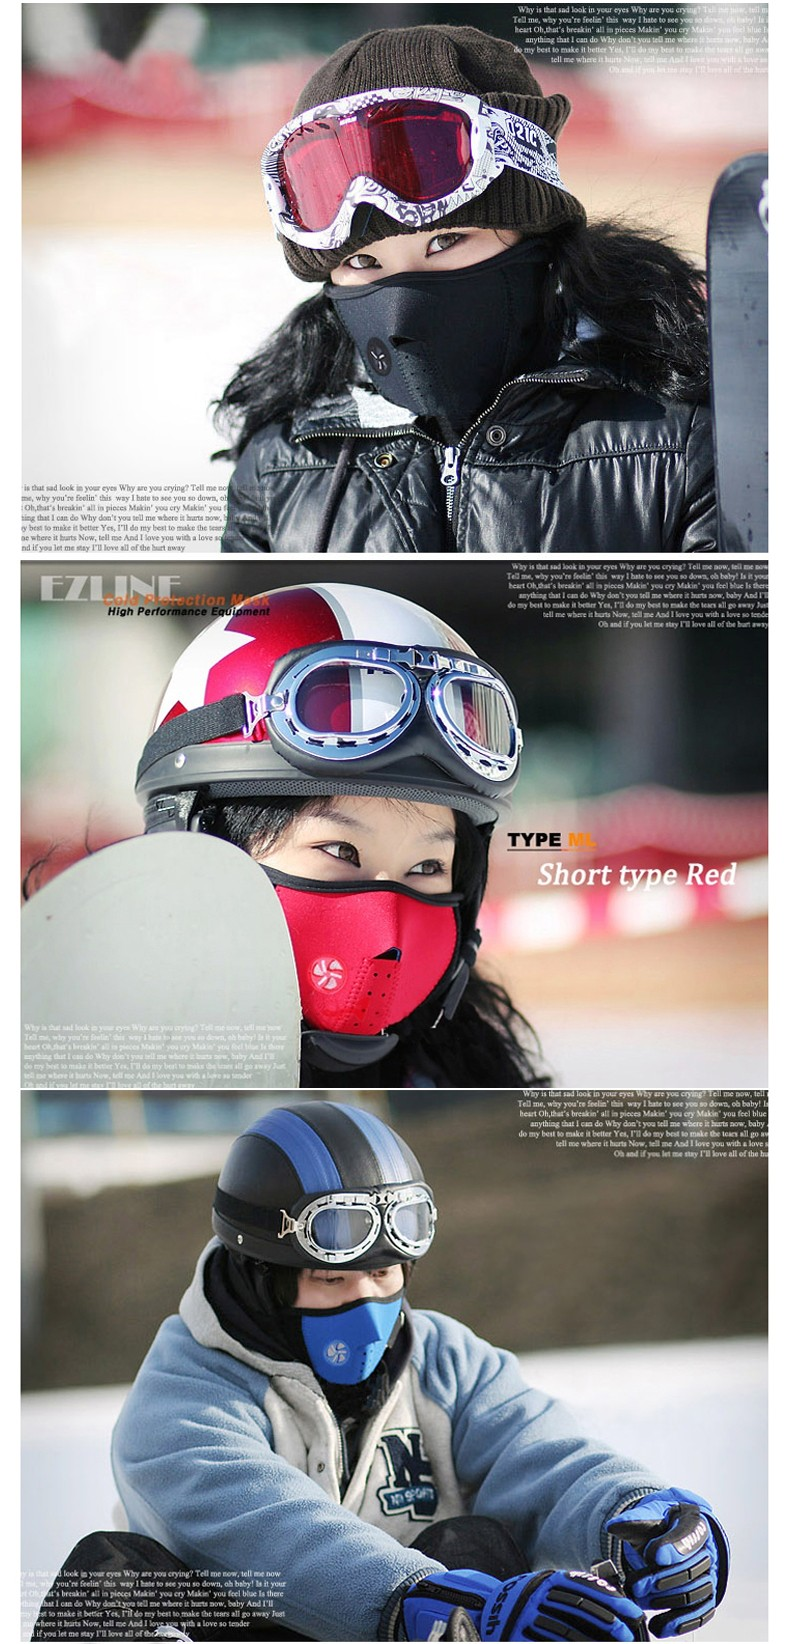 2016 New Arrival Winter Bike Motorcycle Bicycle Ski Snow Snowboard Sport Face Mask Windproof Cold Resist Neck Warm Skiing Bibs (7)